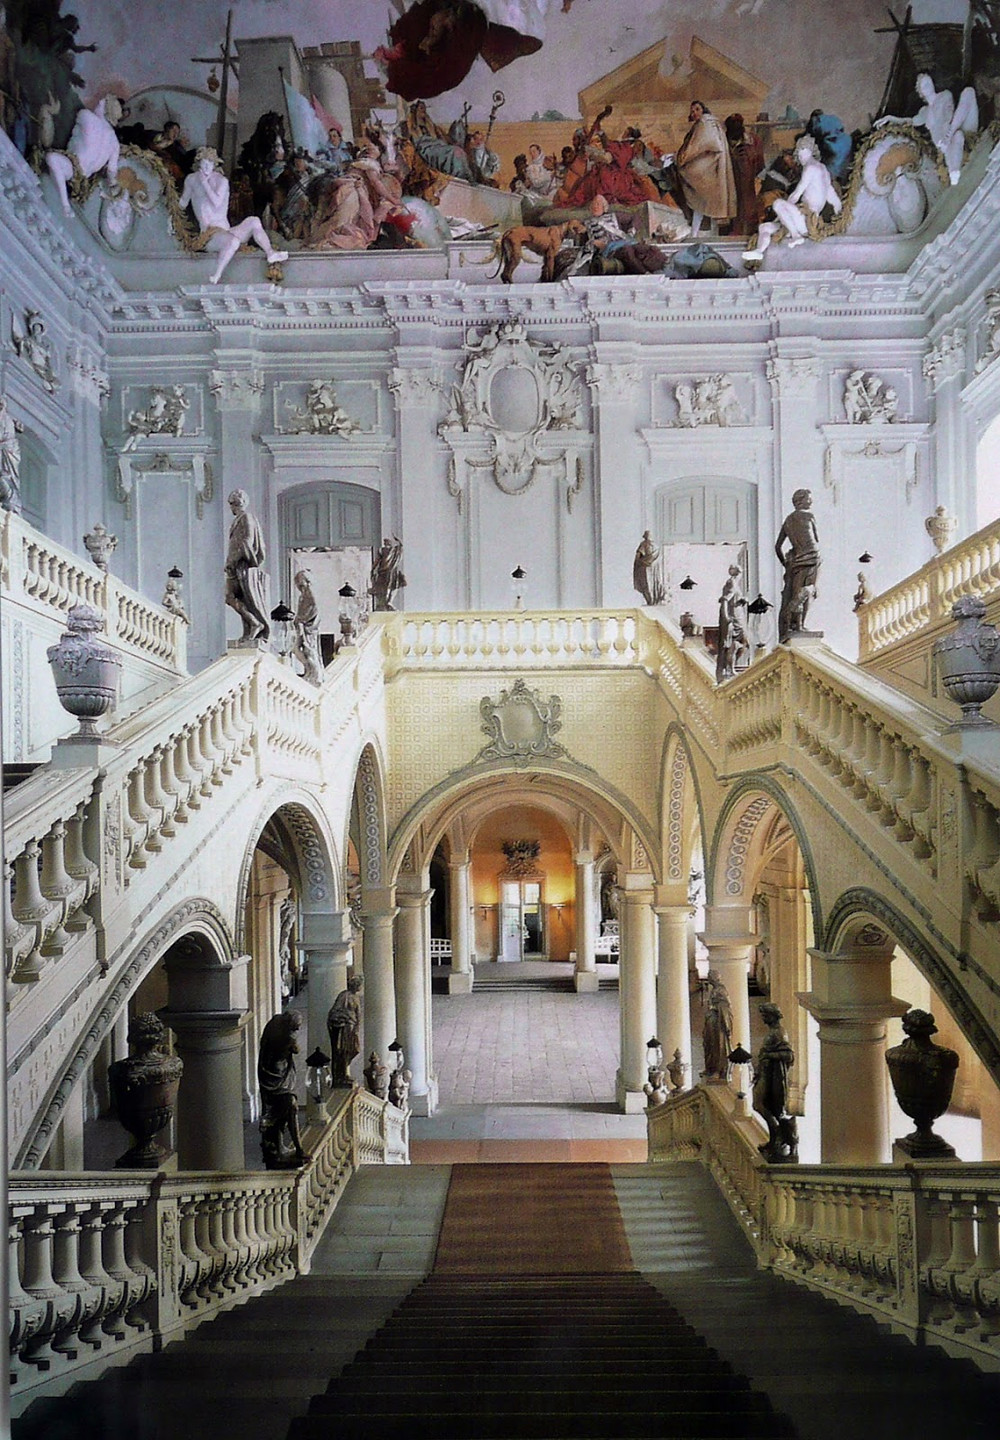 the Treppenhaus, or grand staircase, at the Wurzburg Residence